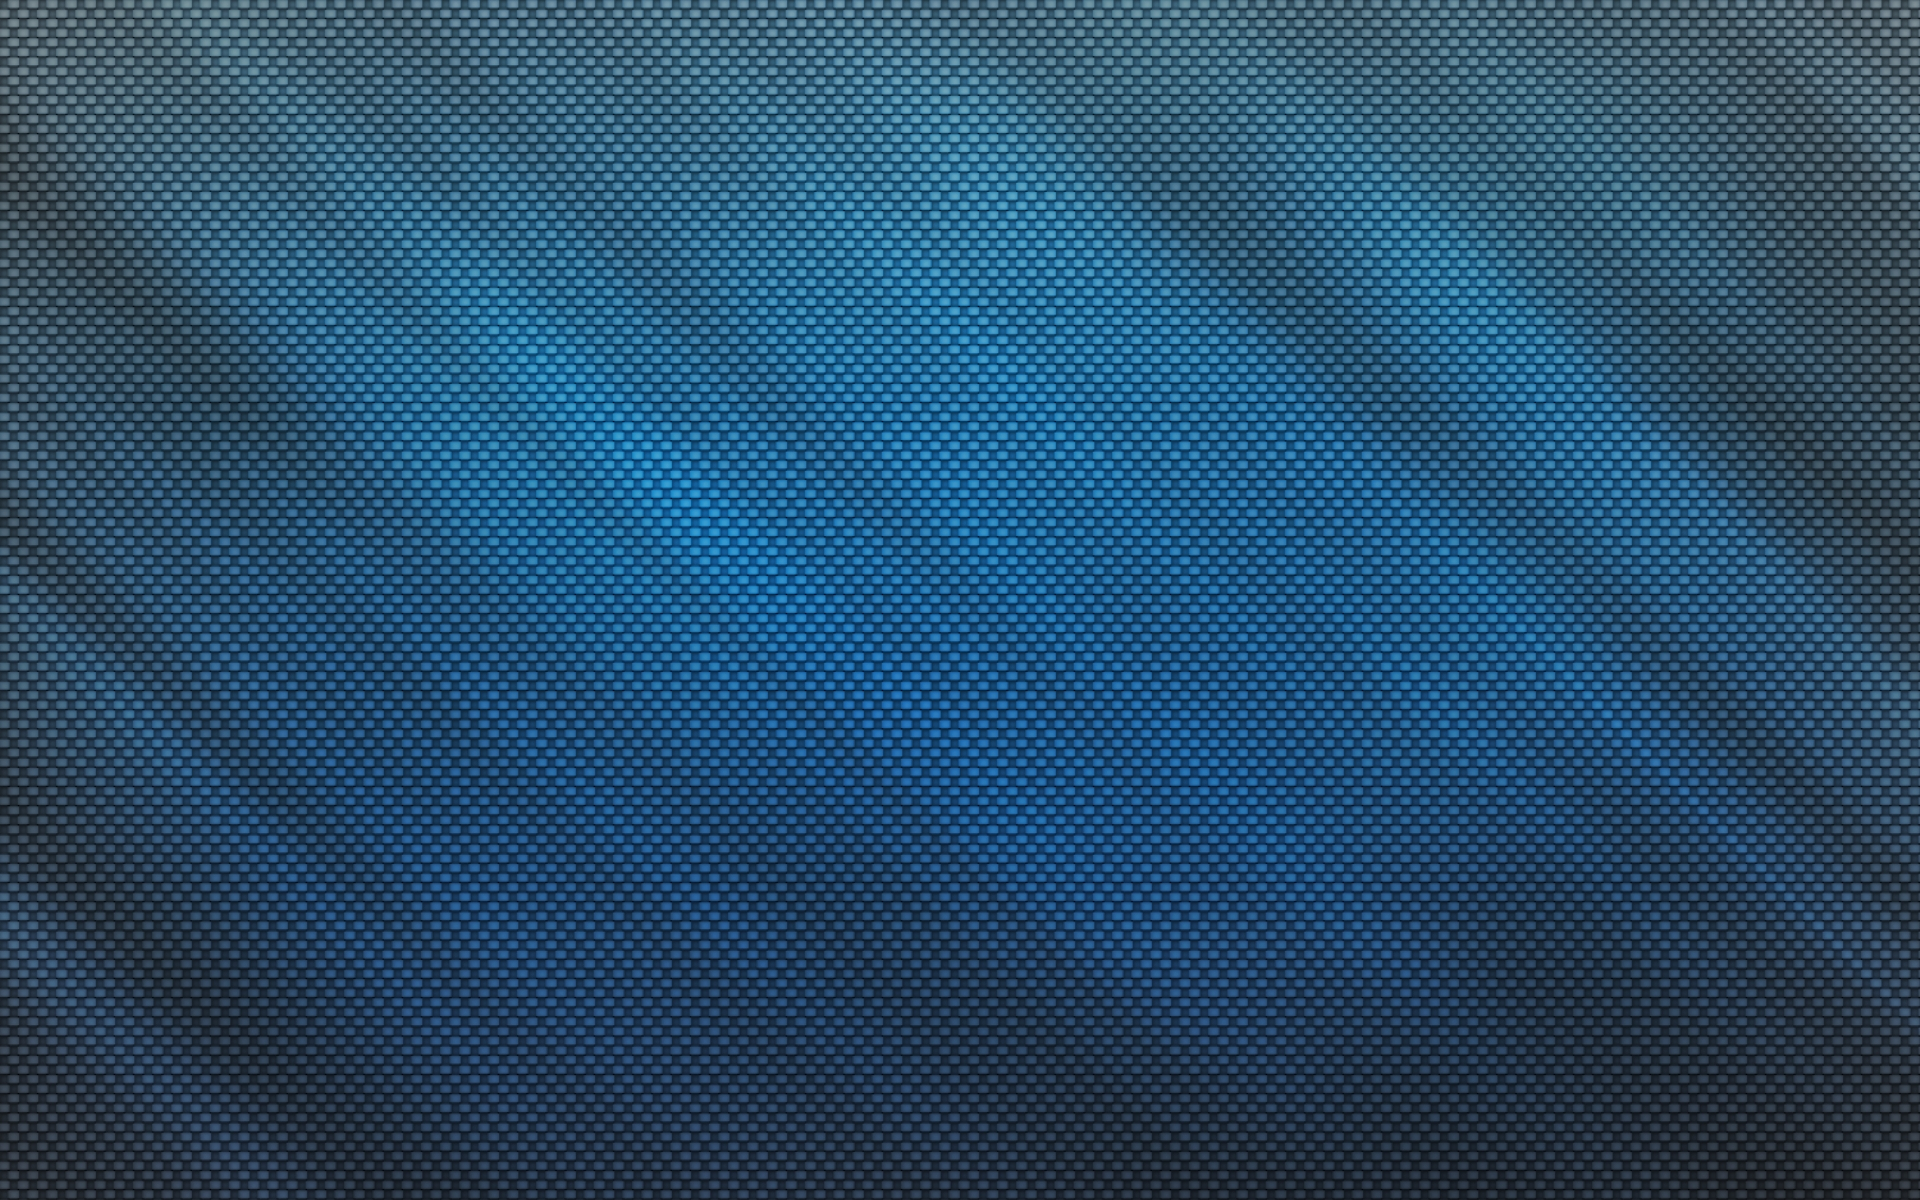 blue carbon fiber wallpaper hd reflection download. - media file